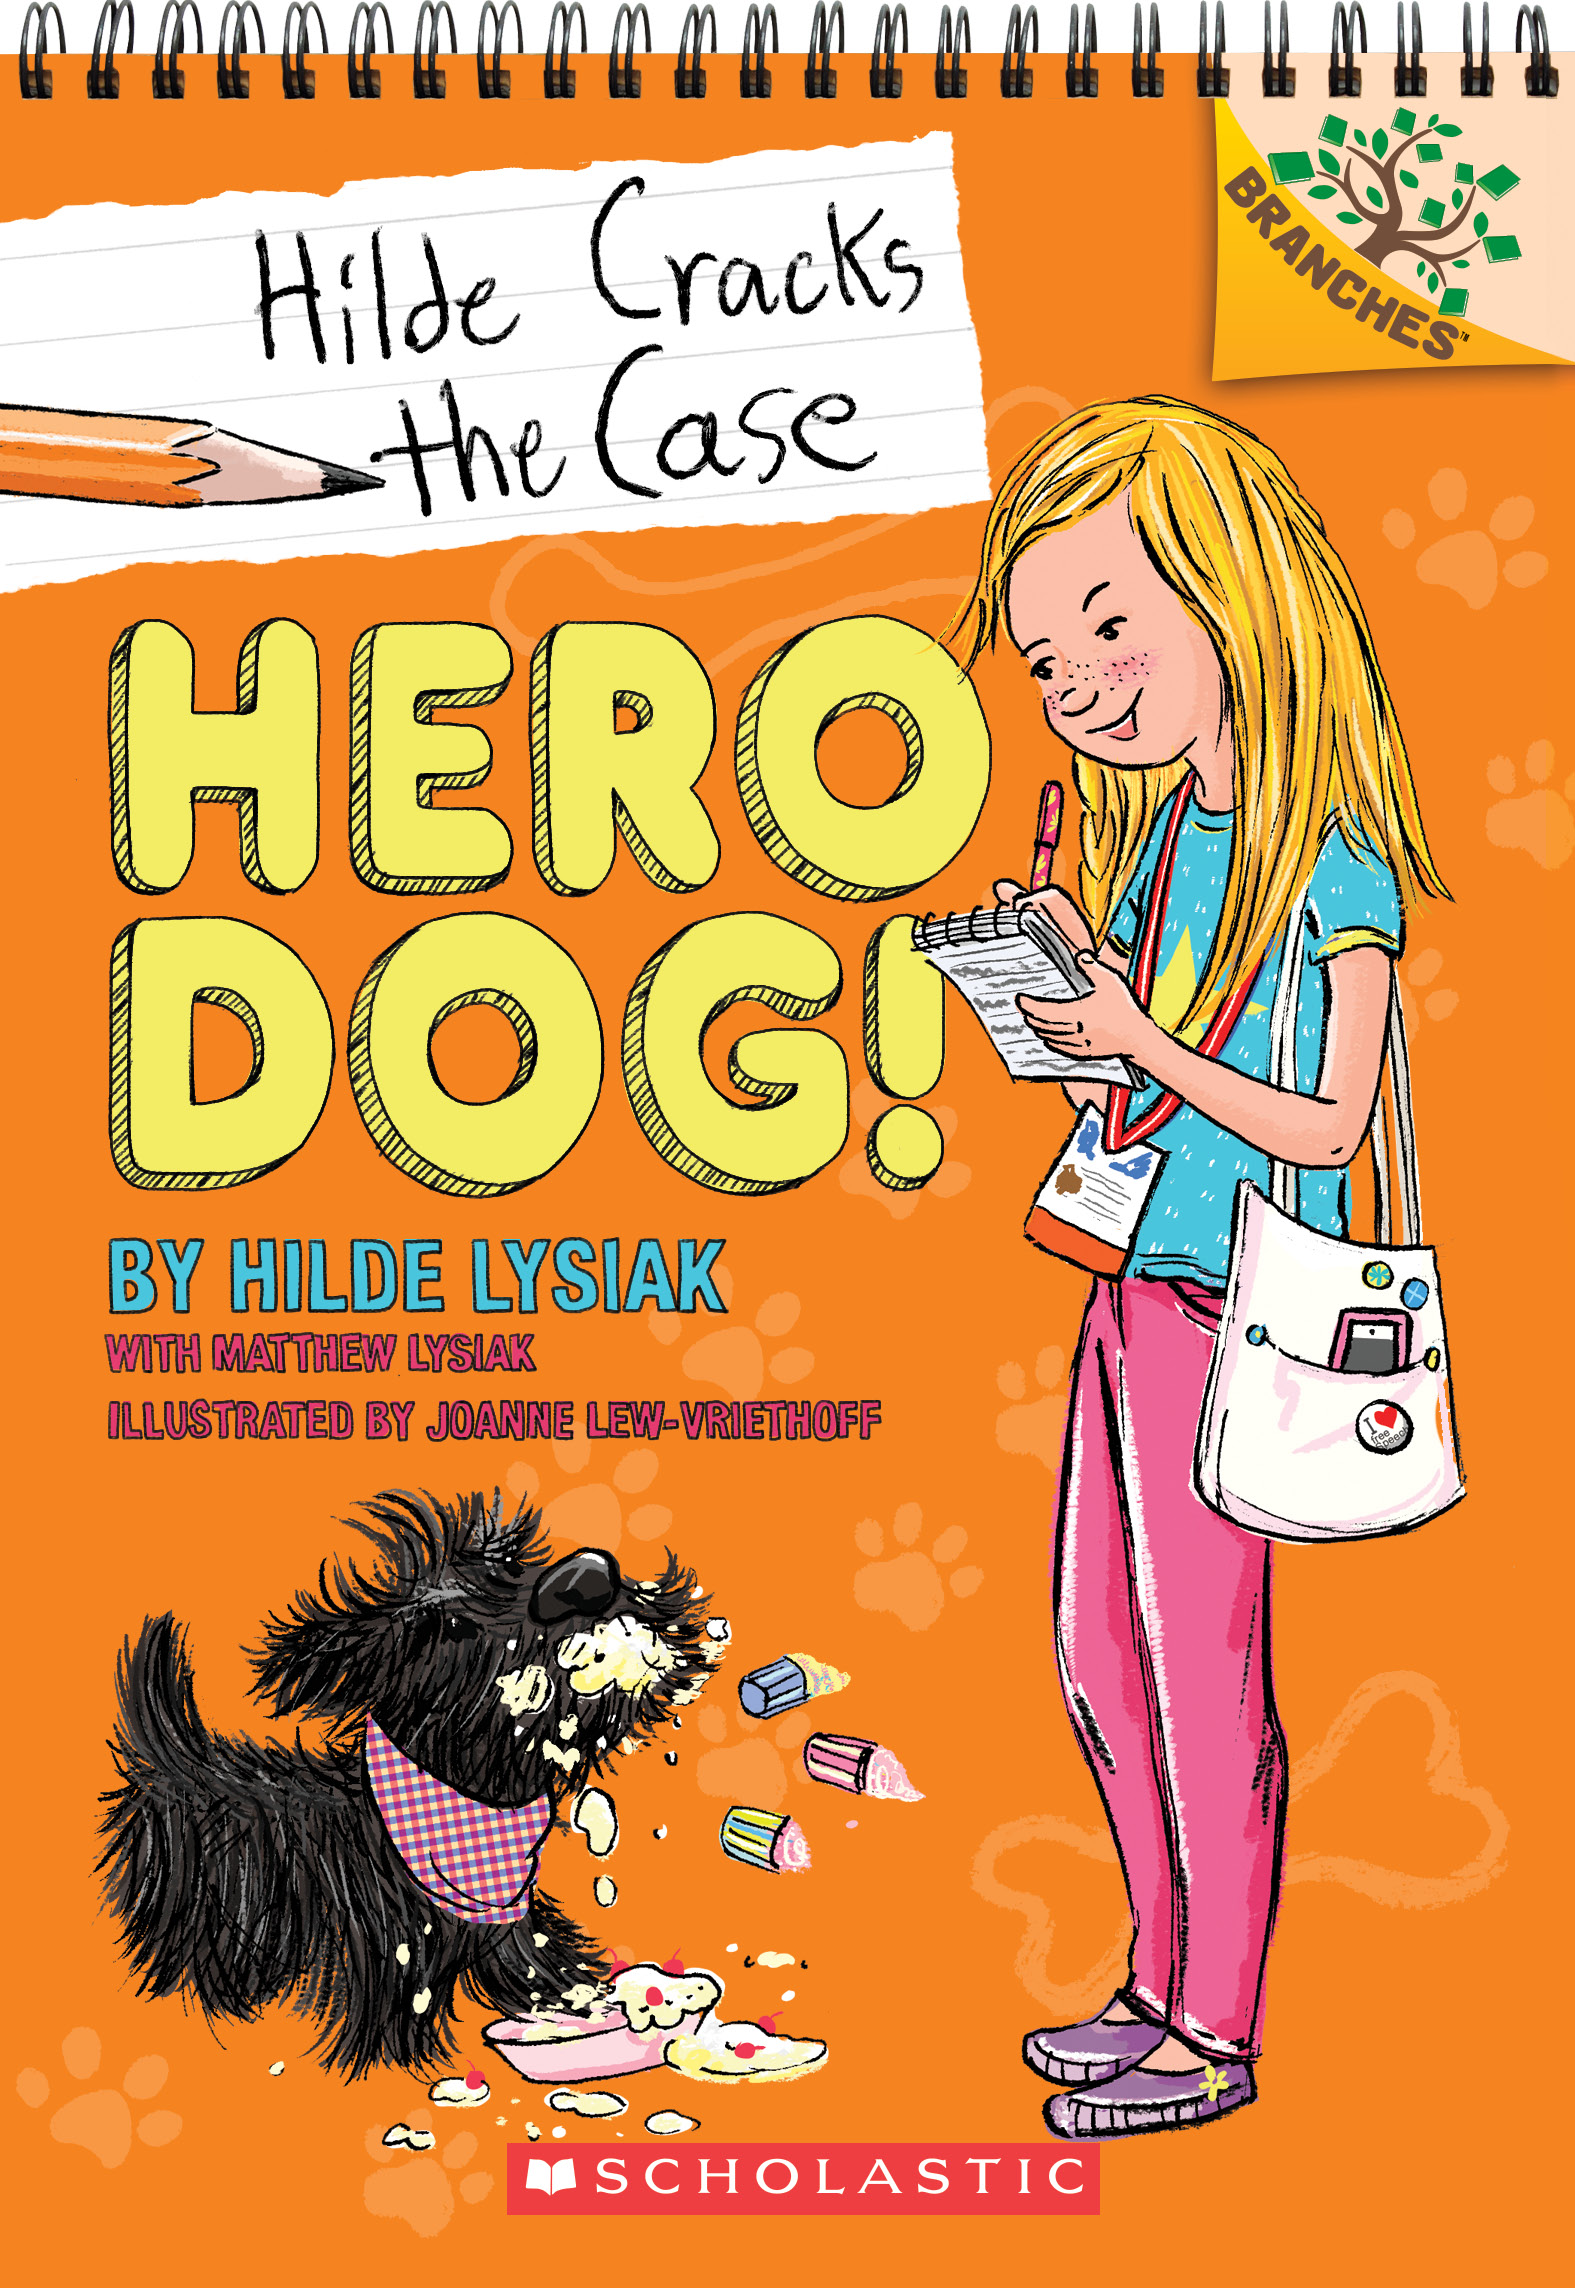 Hilde Cracks the Case by Hilde Lysiak and Joanne Lew-Vriethoff